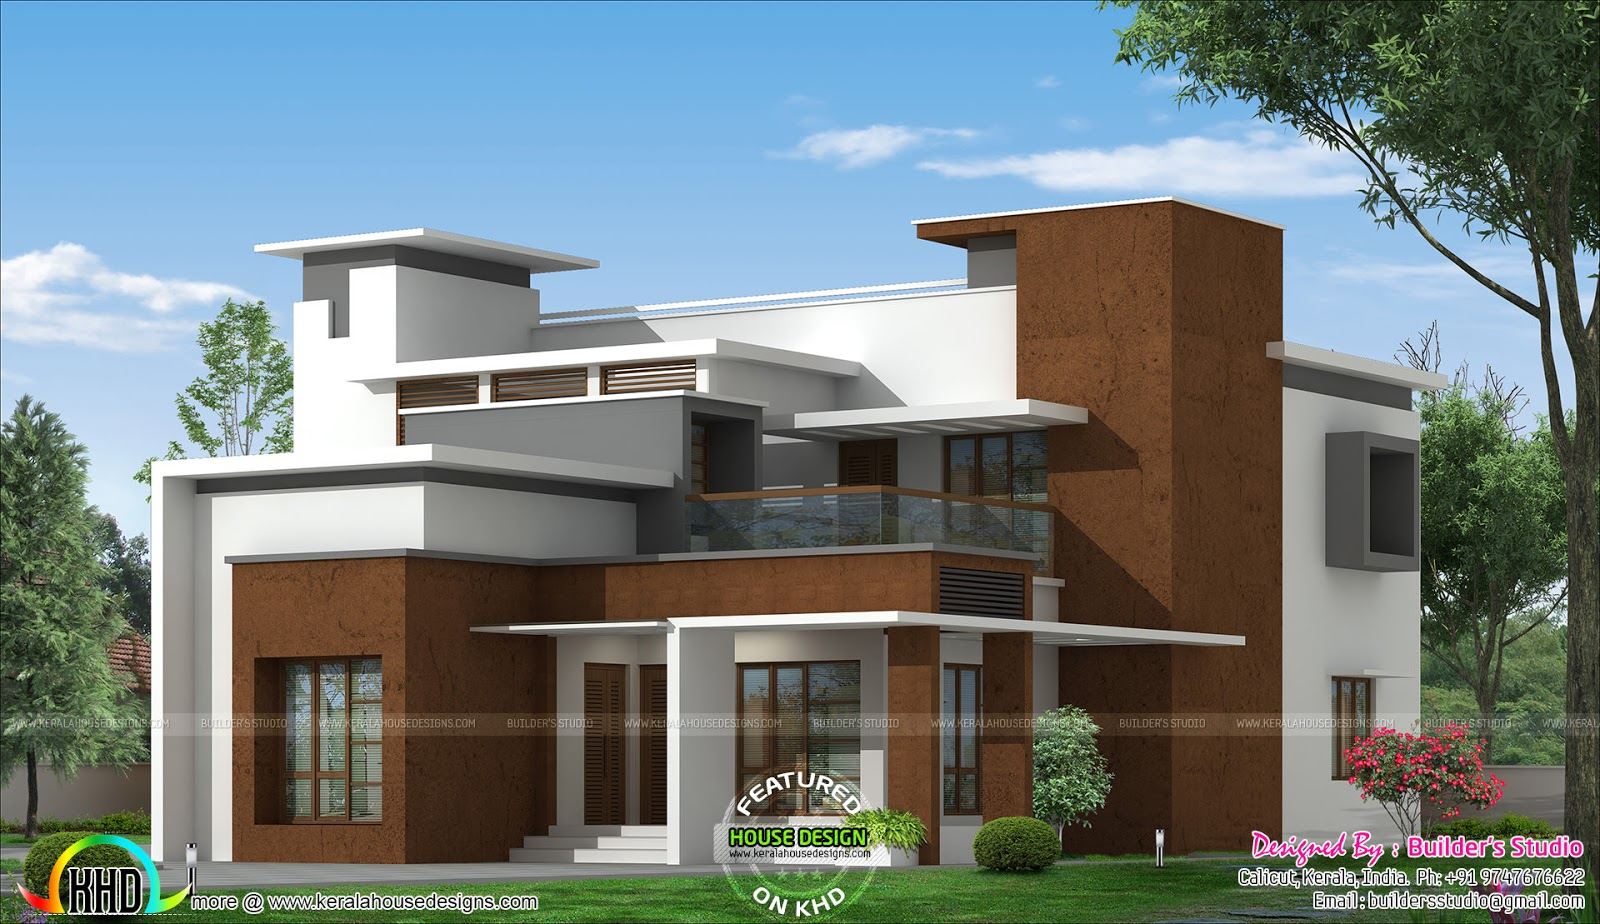 Box type modern home architecture plan kerala home for Types of architecture design